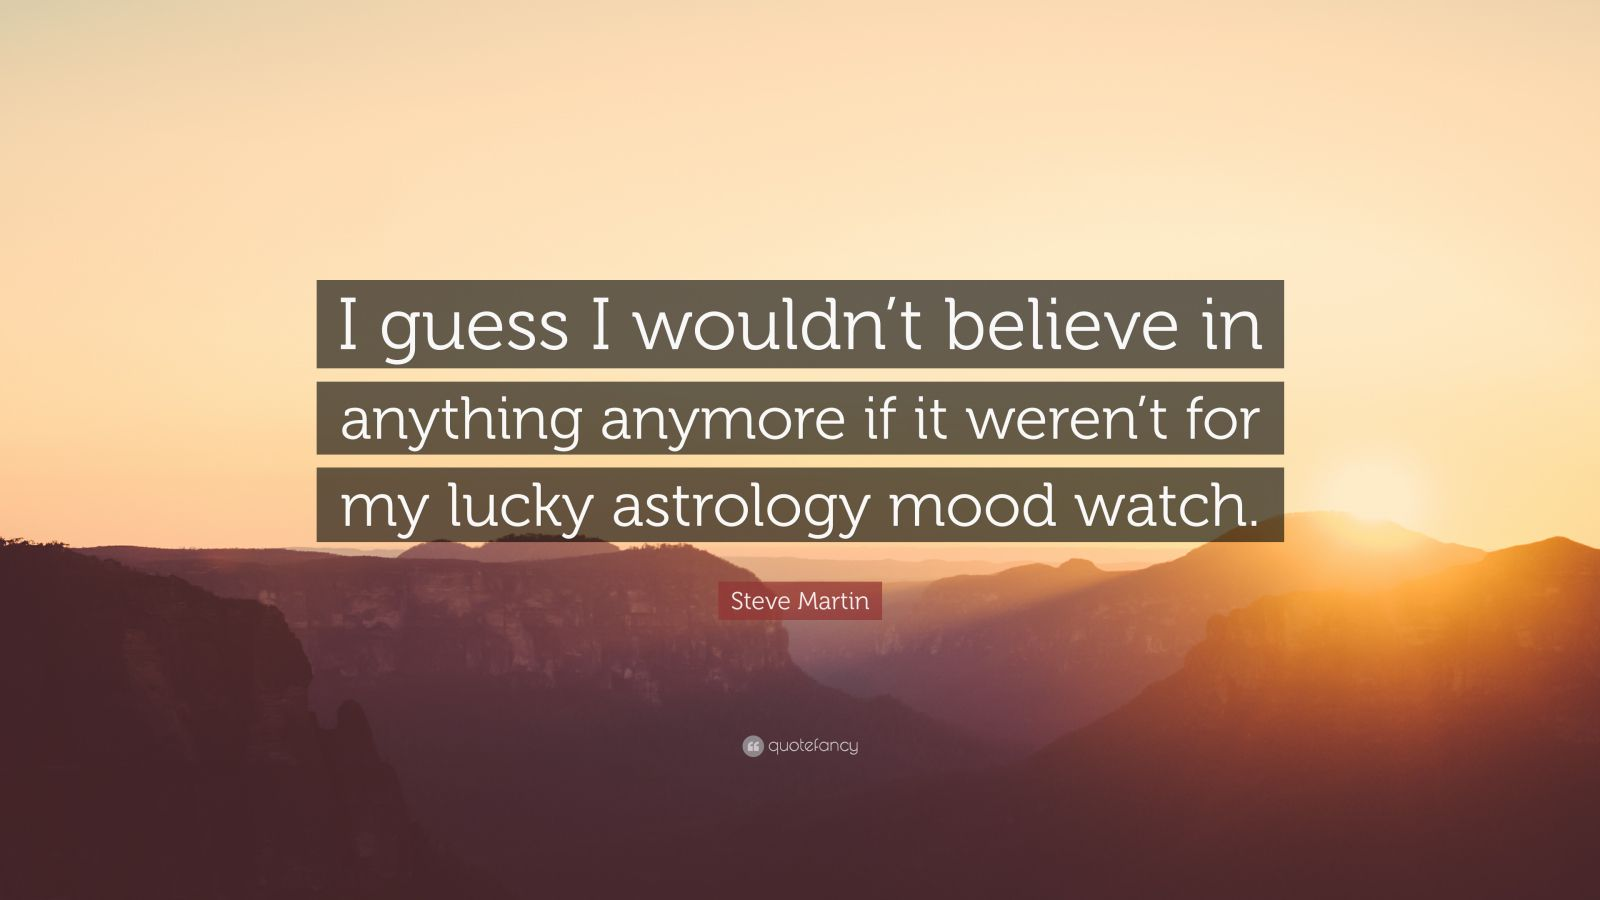 """Steve Martin Quote: """"I guess I wouldn't believe in anything anymore if it weren't for my lucky astrology mood watch."""""""